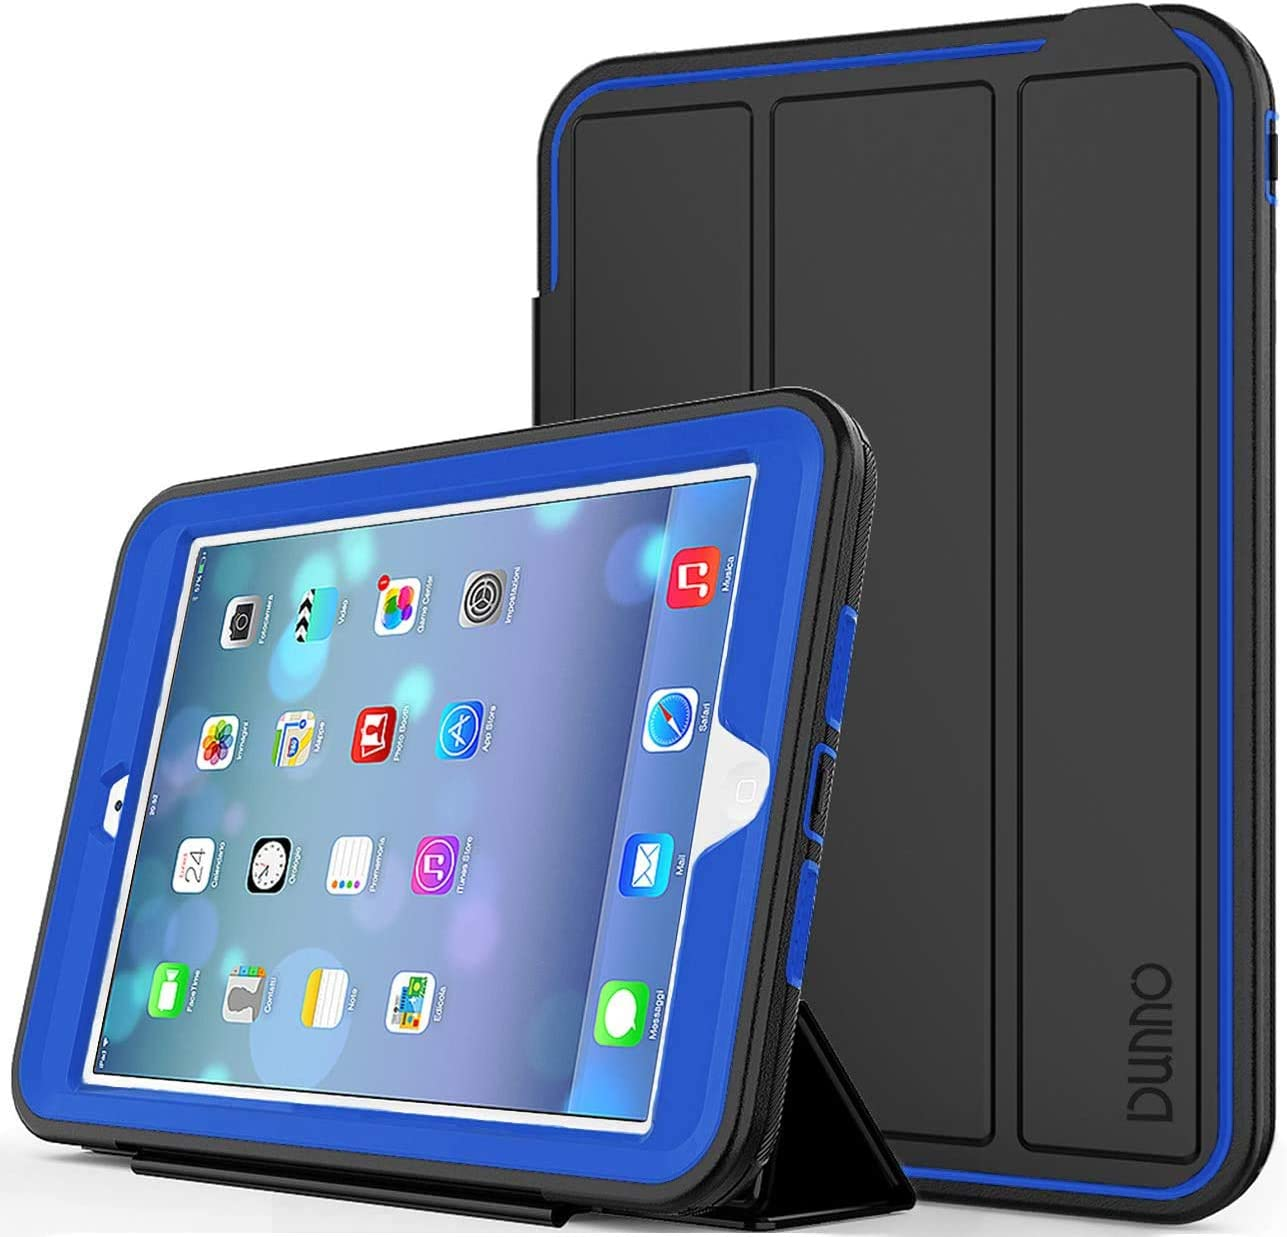 iPad Mini 2 Case - iPad Mini Case, iPad Mini 3 Case DUNNO Smart Cover Three Layer Heavy Duty Full Body Protective Case for Apple iPad Mini(1,2,3),Color (Black/Navy Blue)